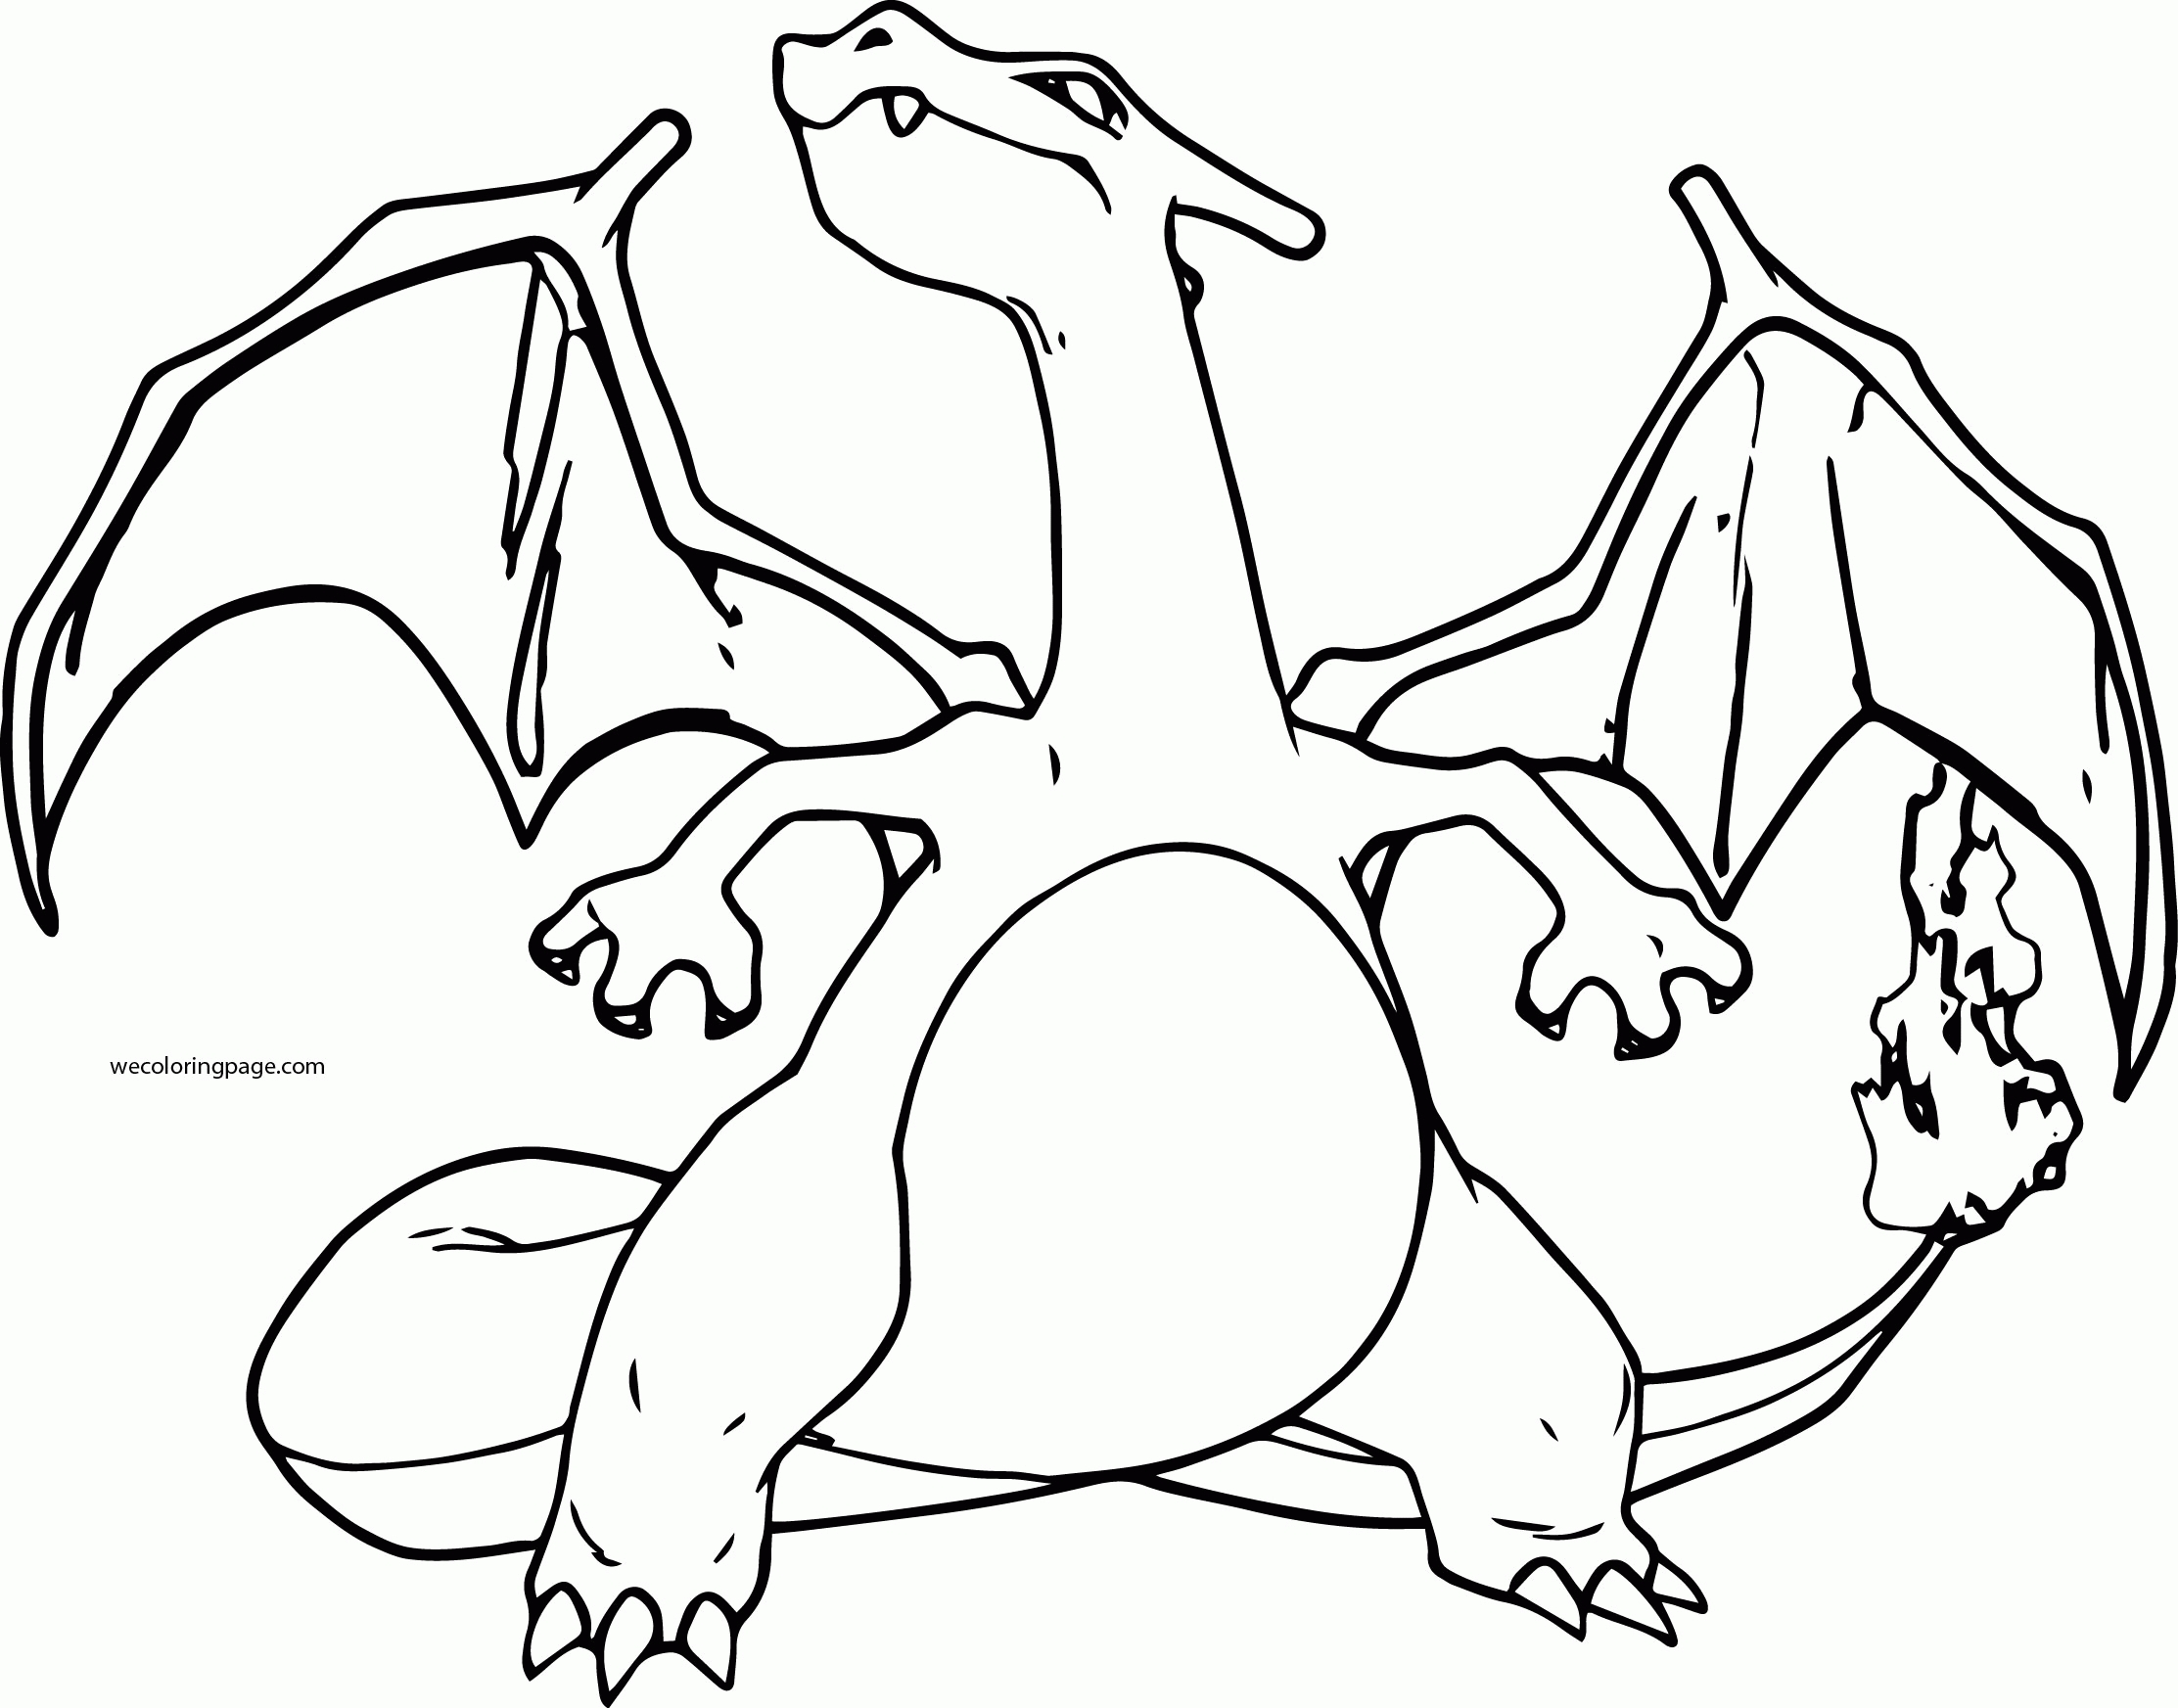 charizard coloring page - pokemon coloring pages mega charizard